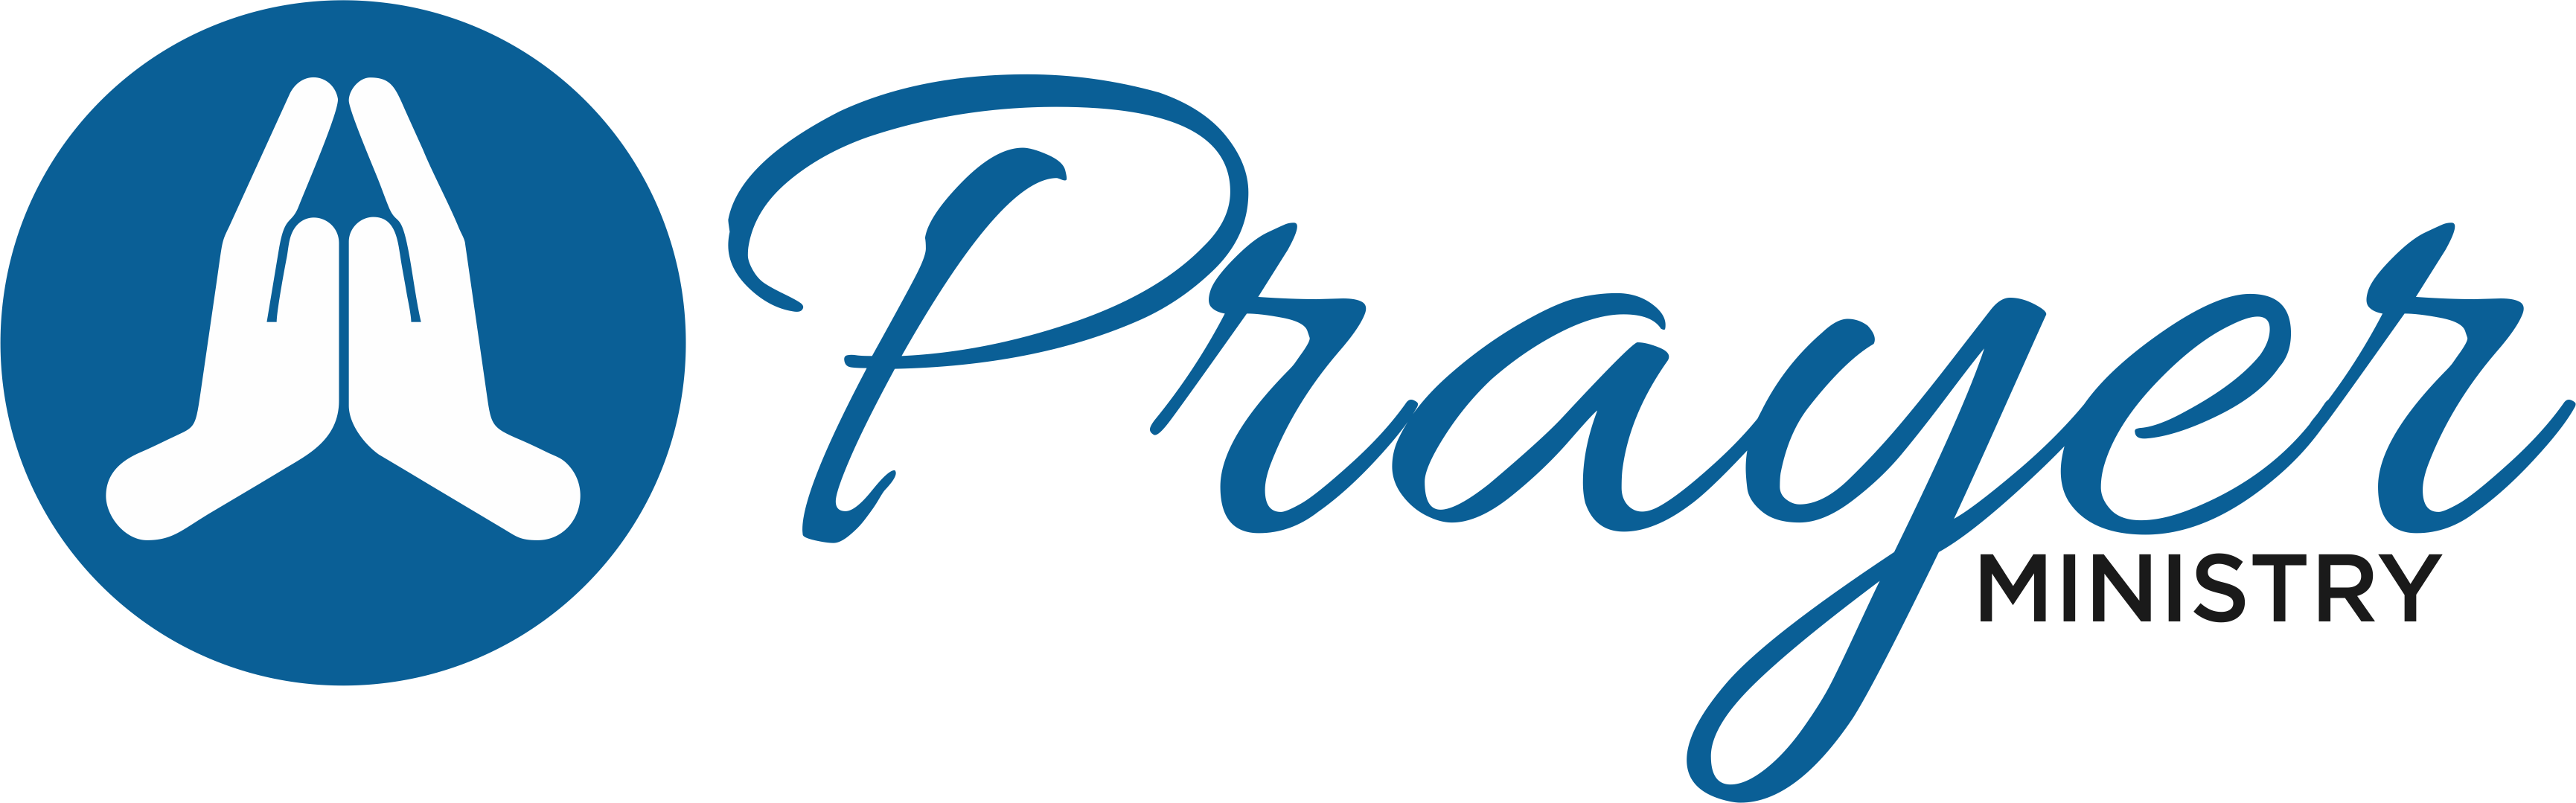 Image result for prayer ministry